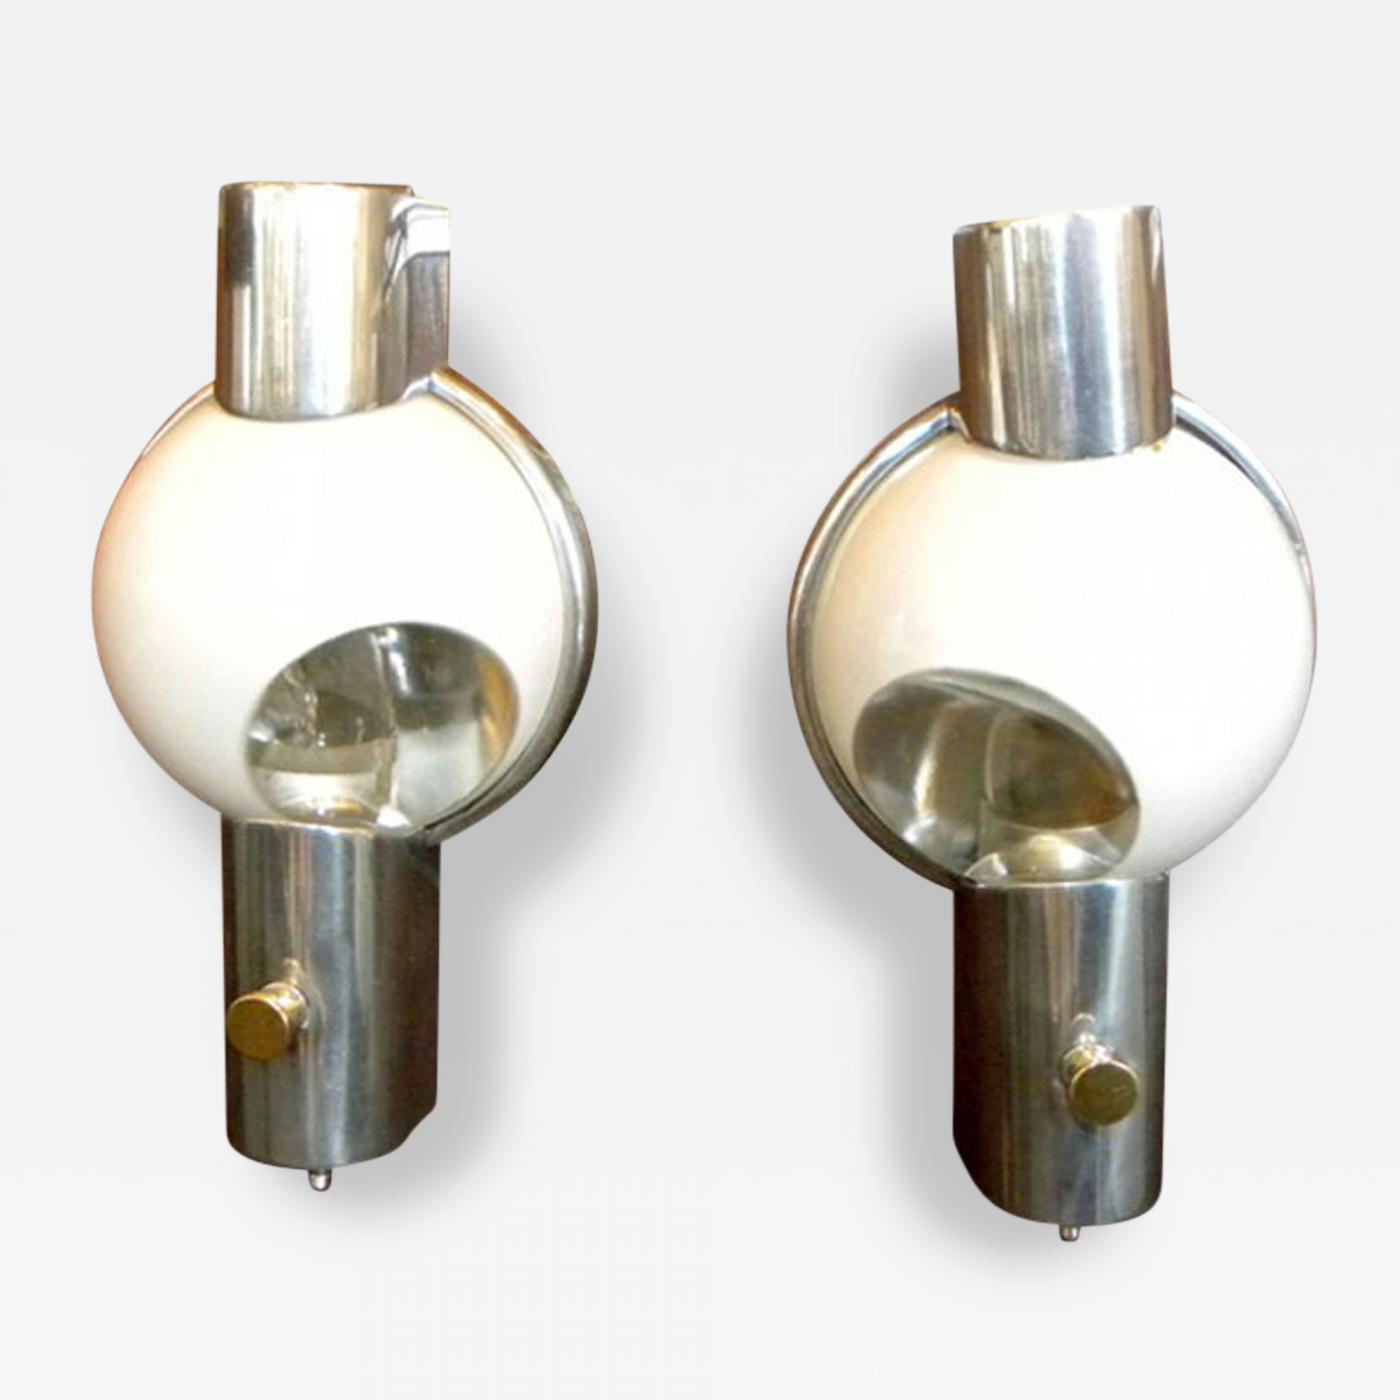 Henry Dreyfuss Pair of Art Deco Streamline Wall Sconces by